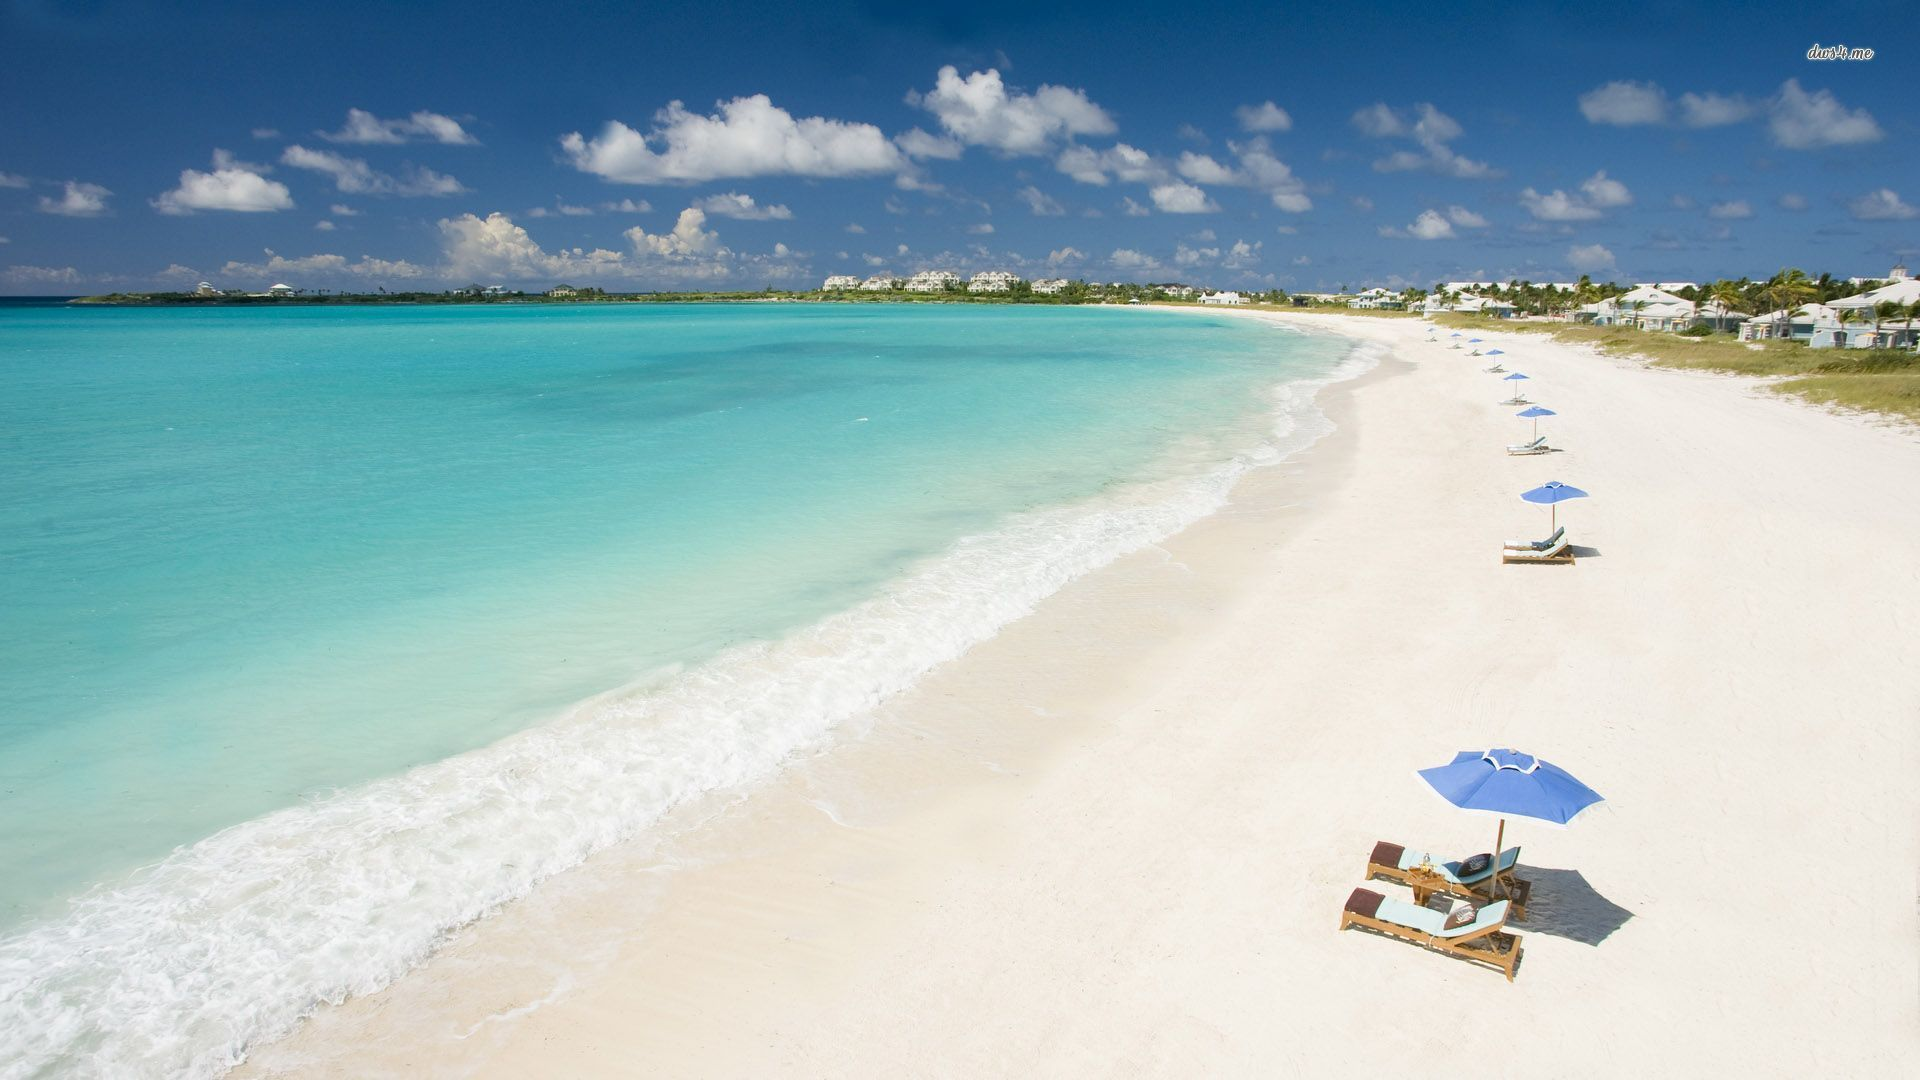 Caribbean Beach wallpaper 1280x800 Caribbean Beach wallpaper 1366x768 1920x1080